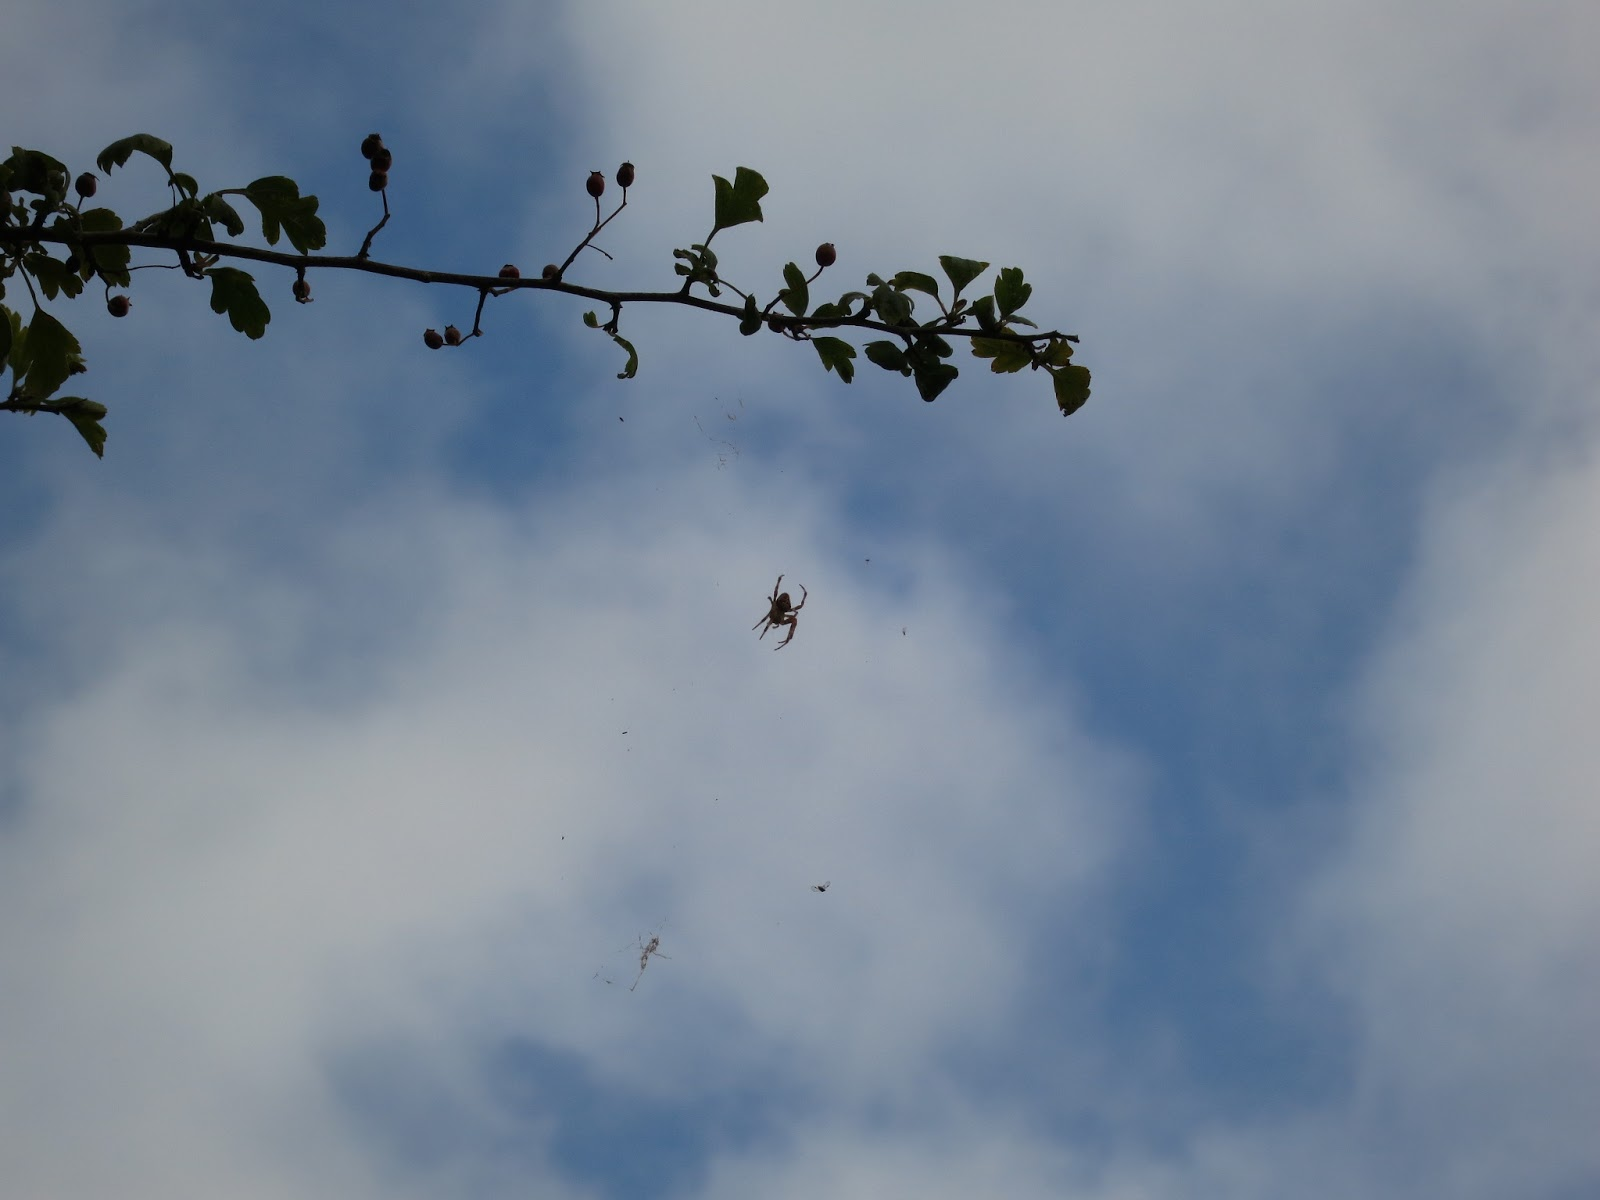 Spider hangs from hawthorn where flies collect in its web